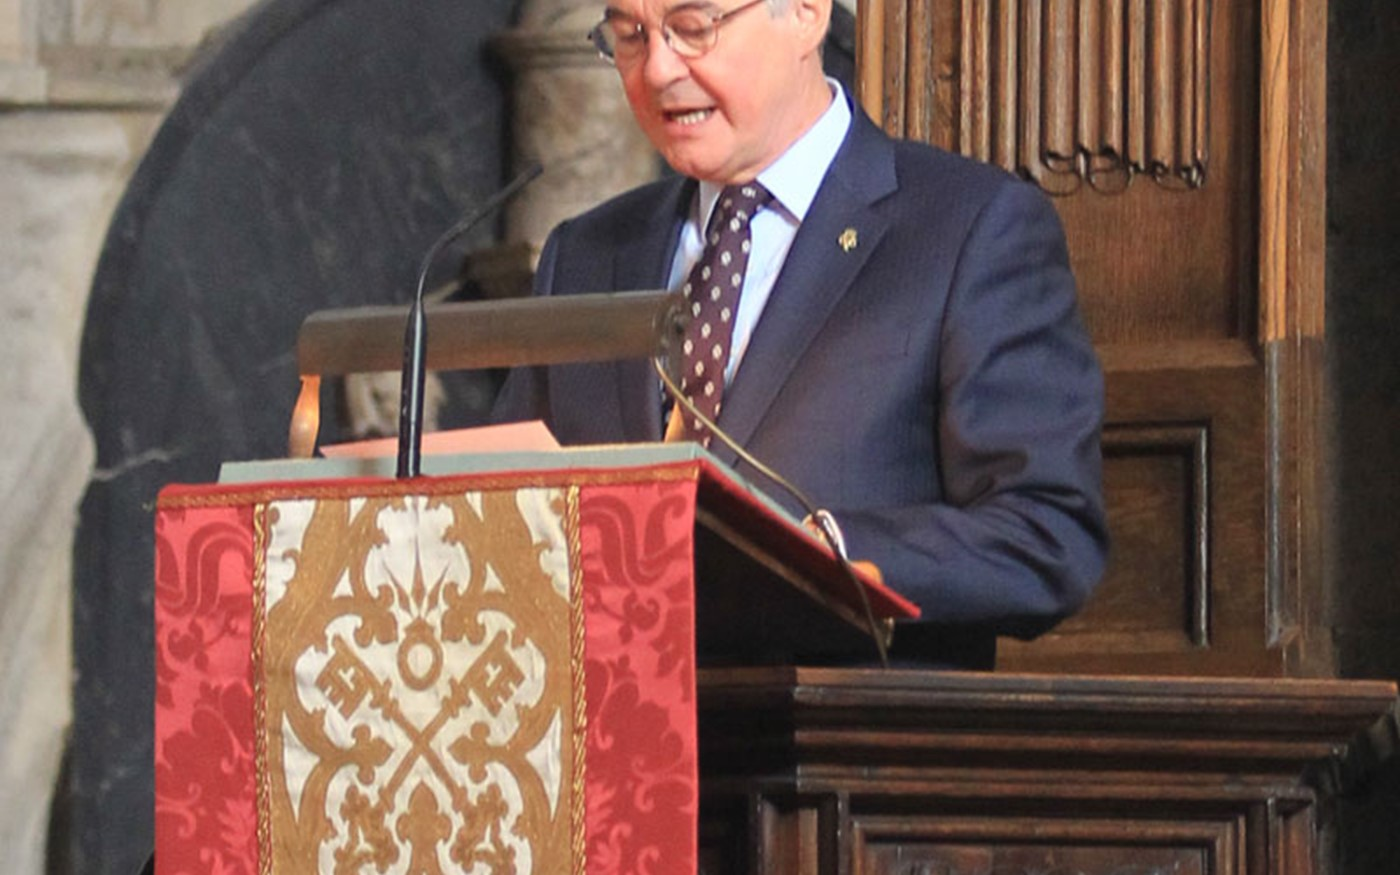 Peter Westgarth, Chief Executive, The Duke of Edinburgh's Award, reads 1 Chronicles 16: 23-34